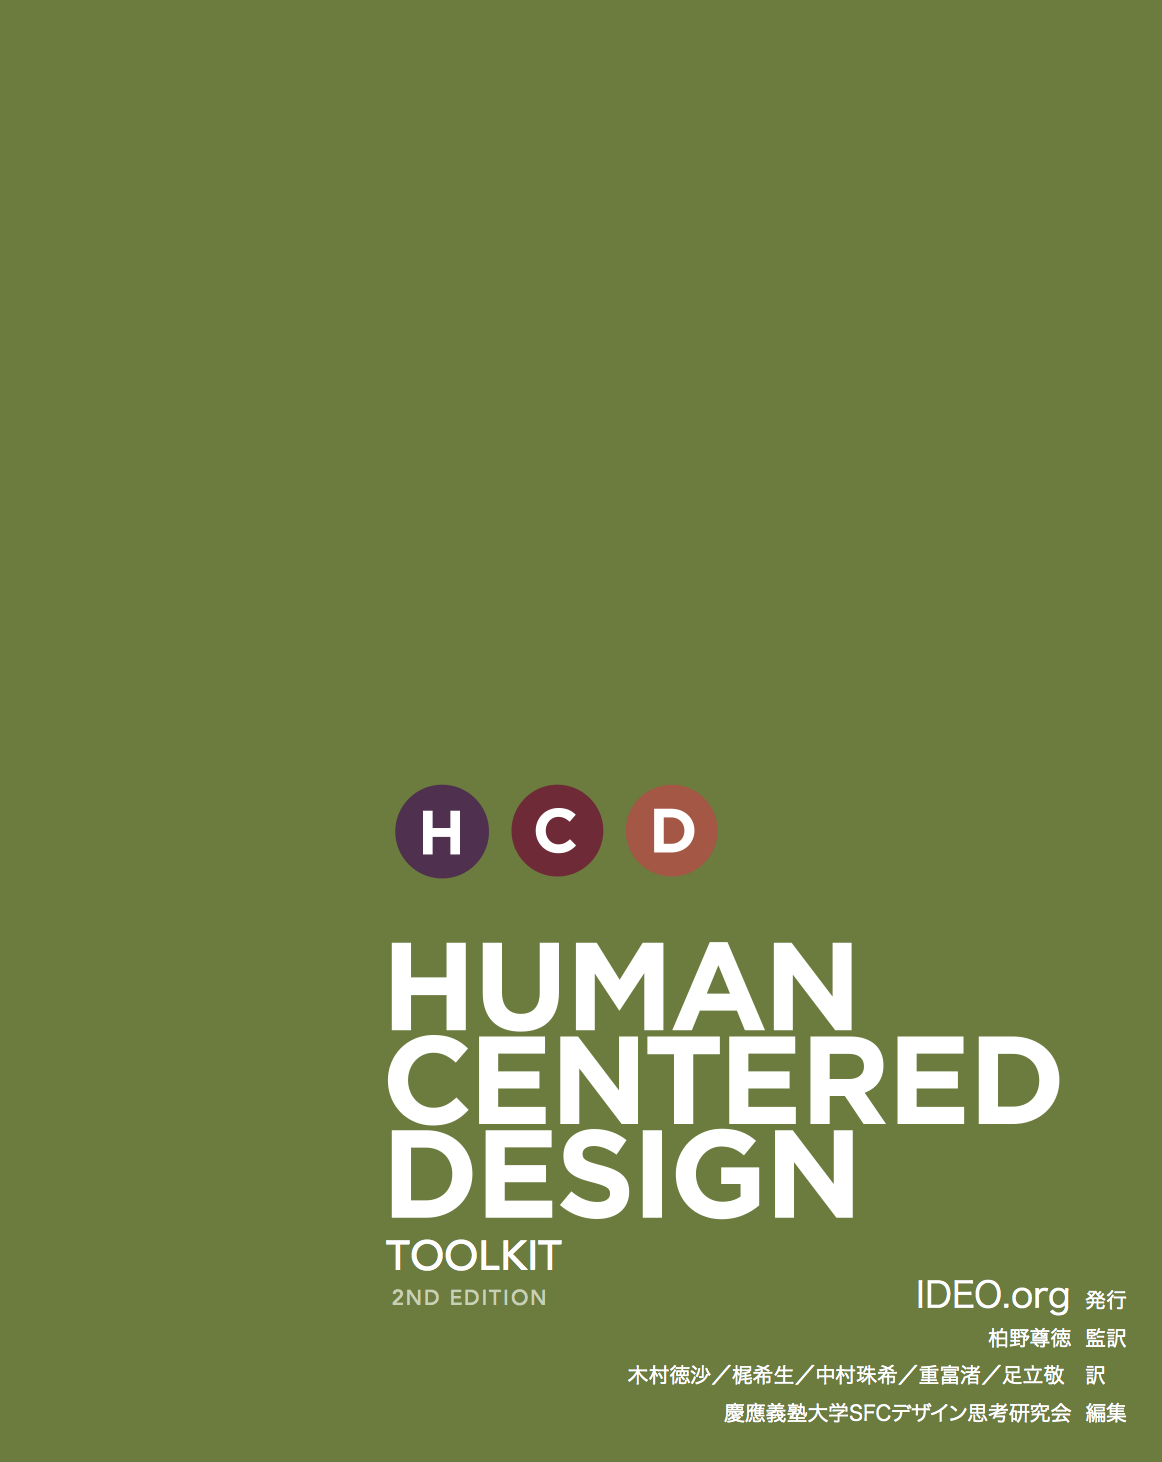 -Human-Centered Design by IDEO.org-